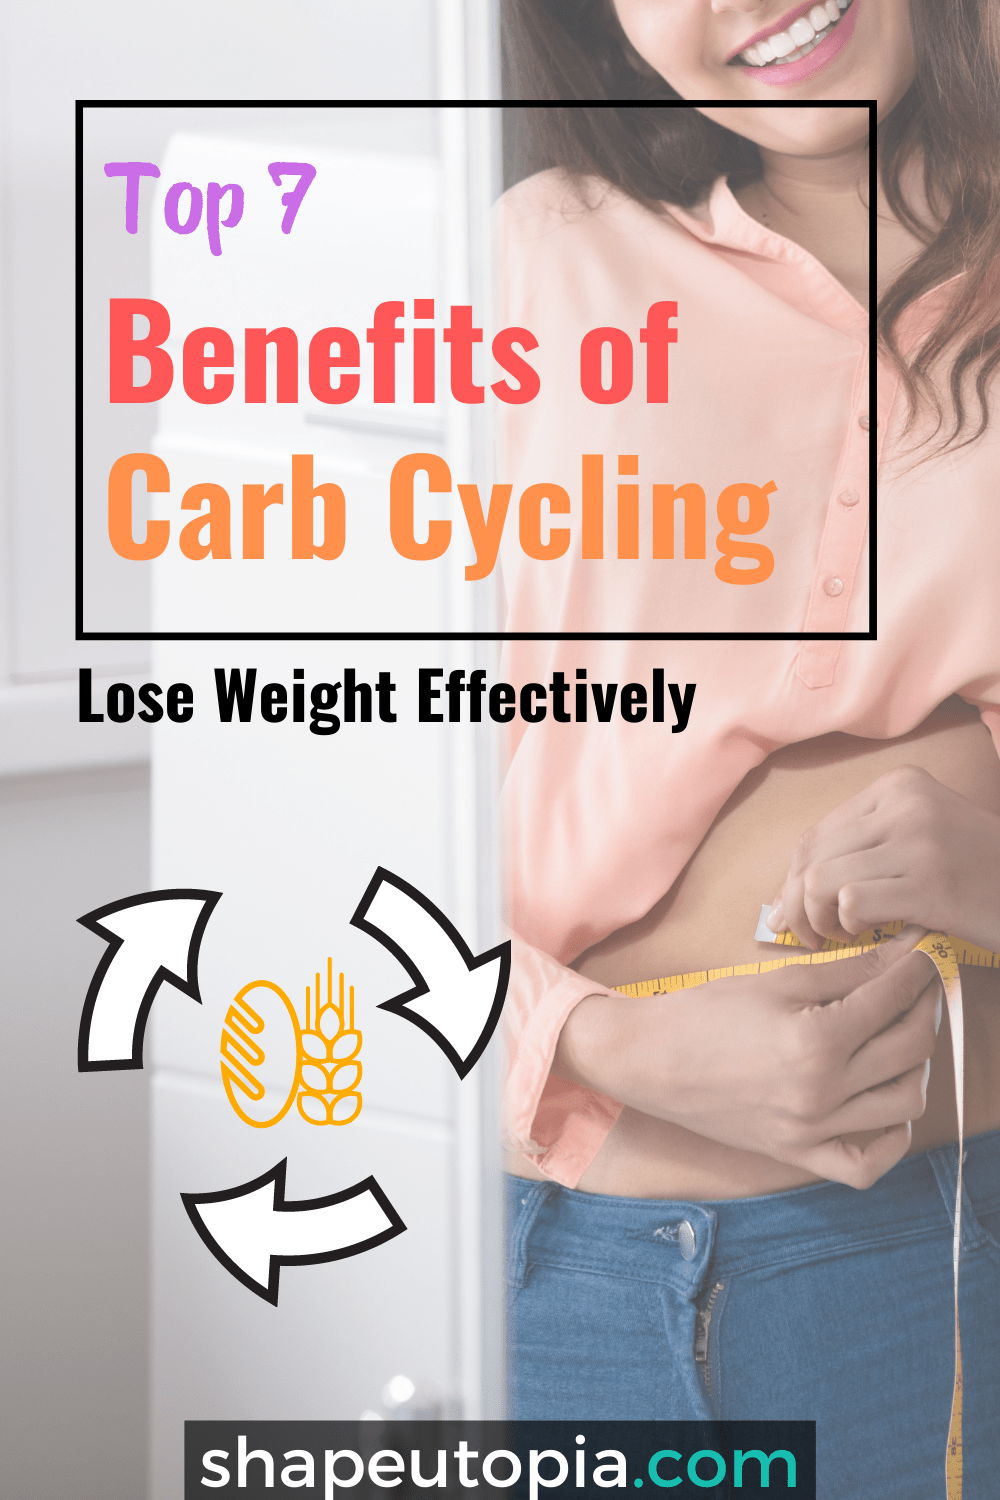 top 7 Benefits of Carb Cycling